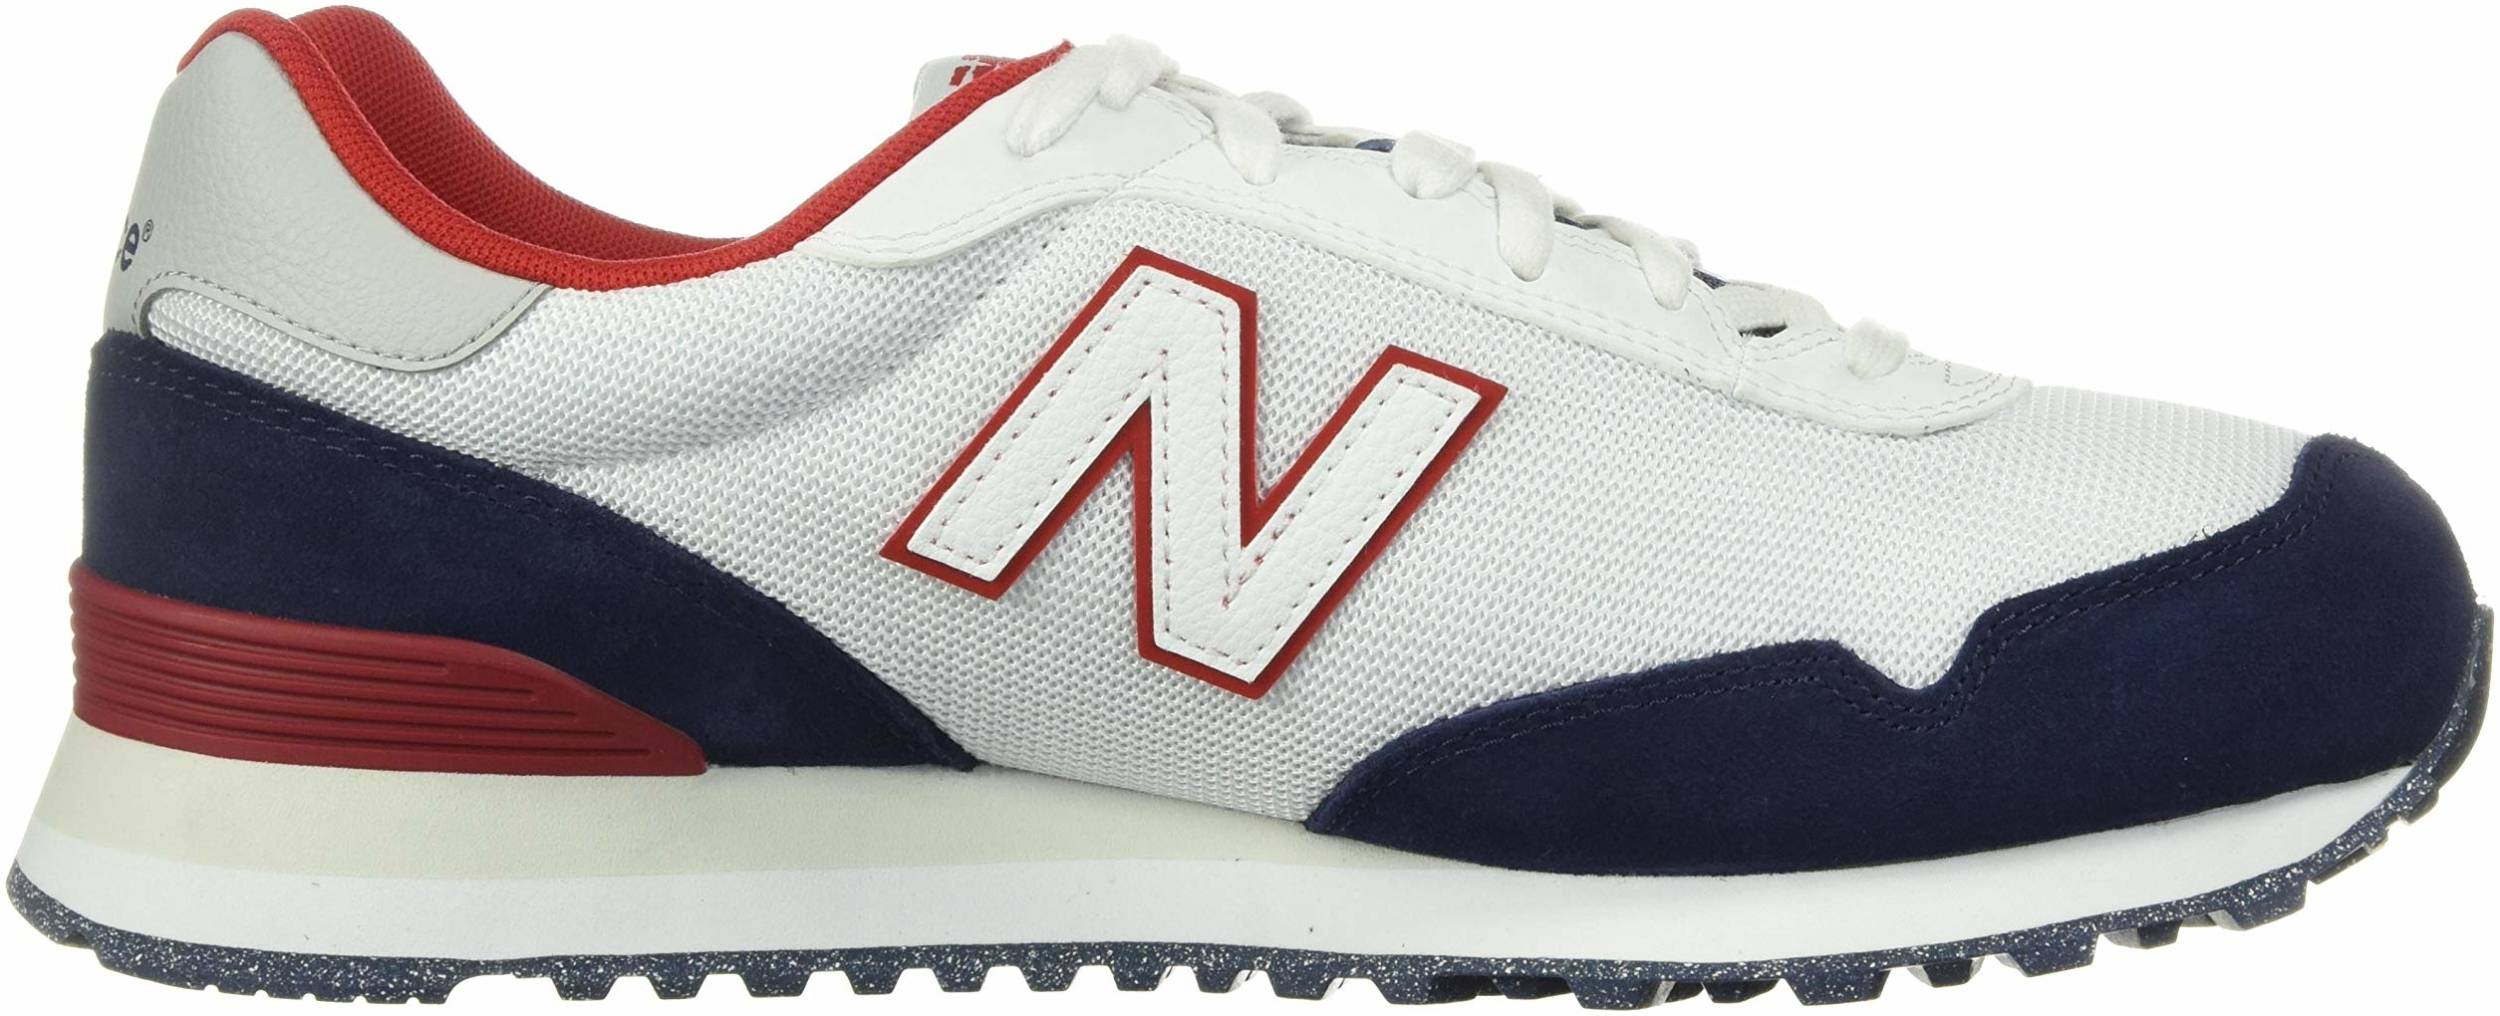 new balance 515 navy red